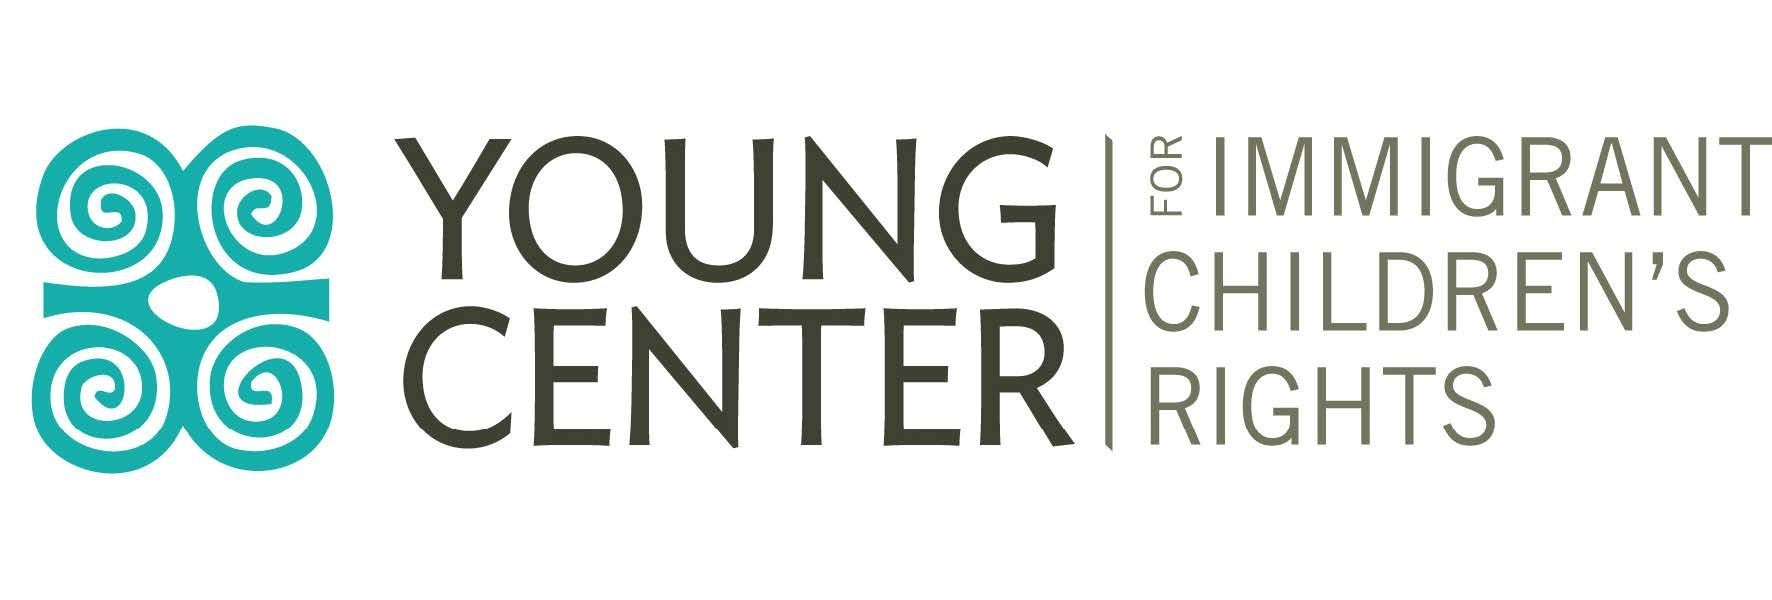 young-center-logo